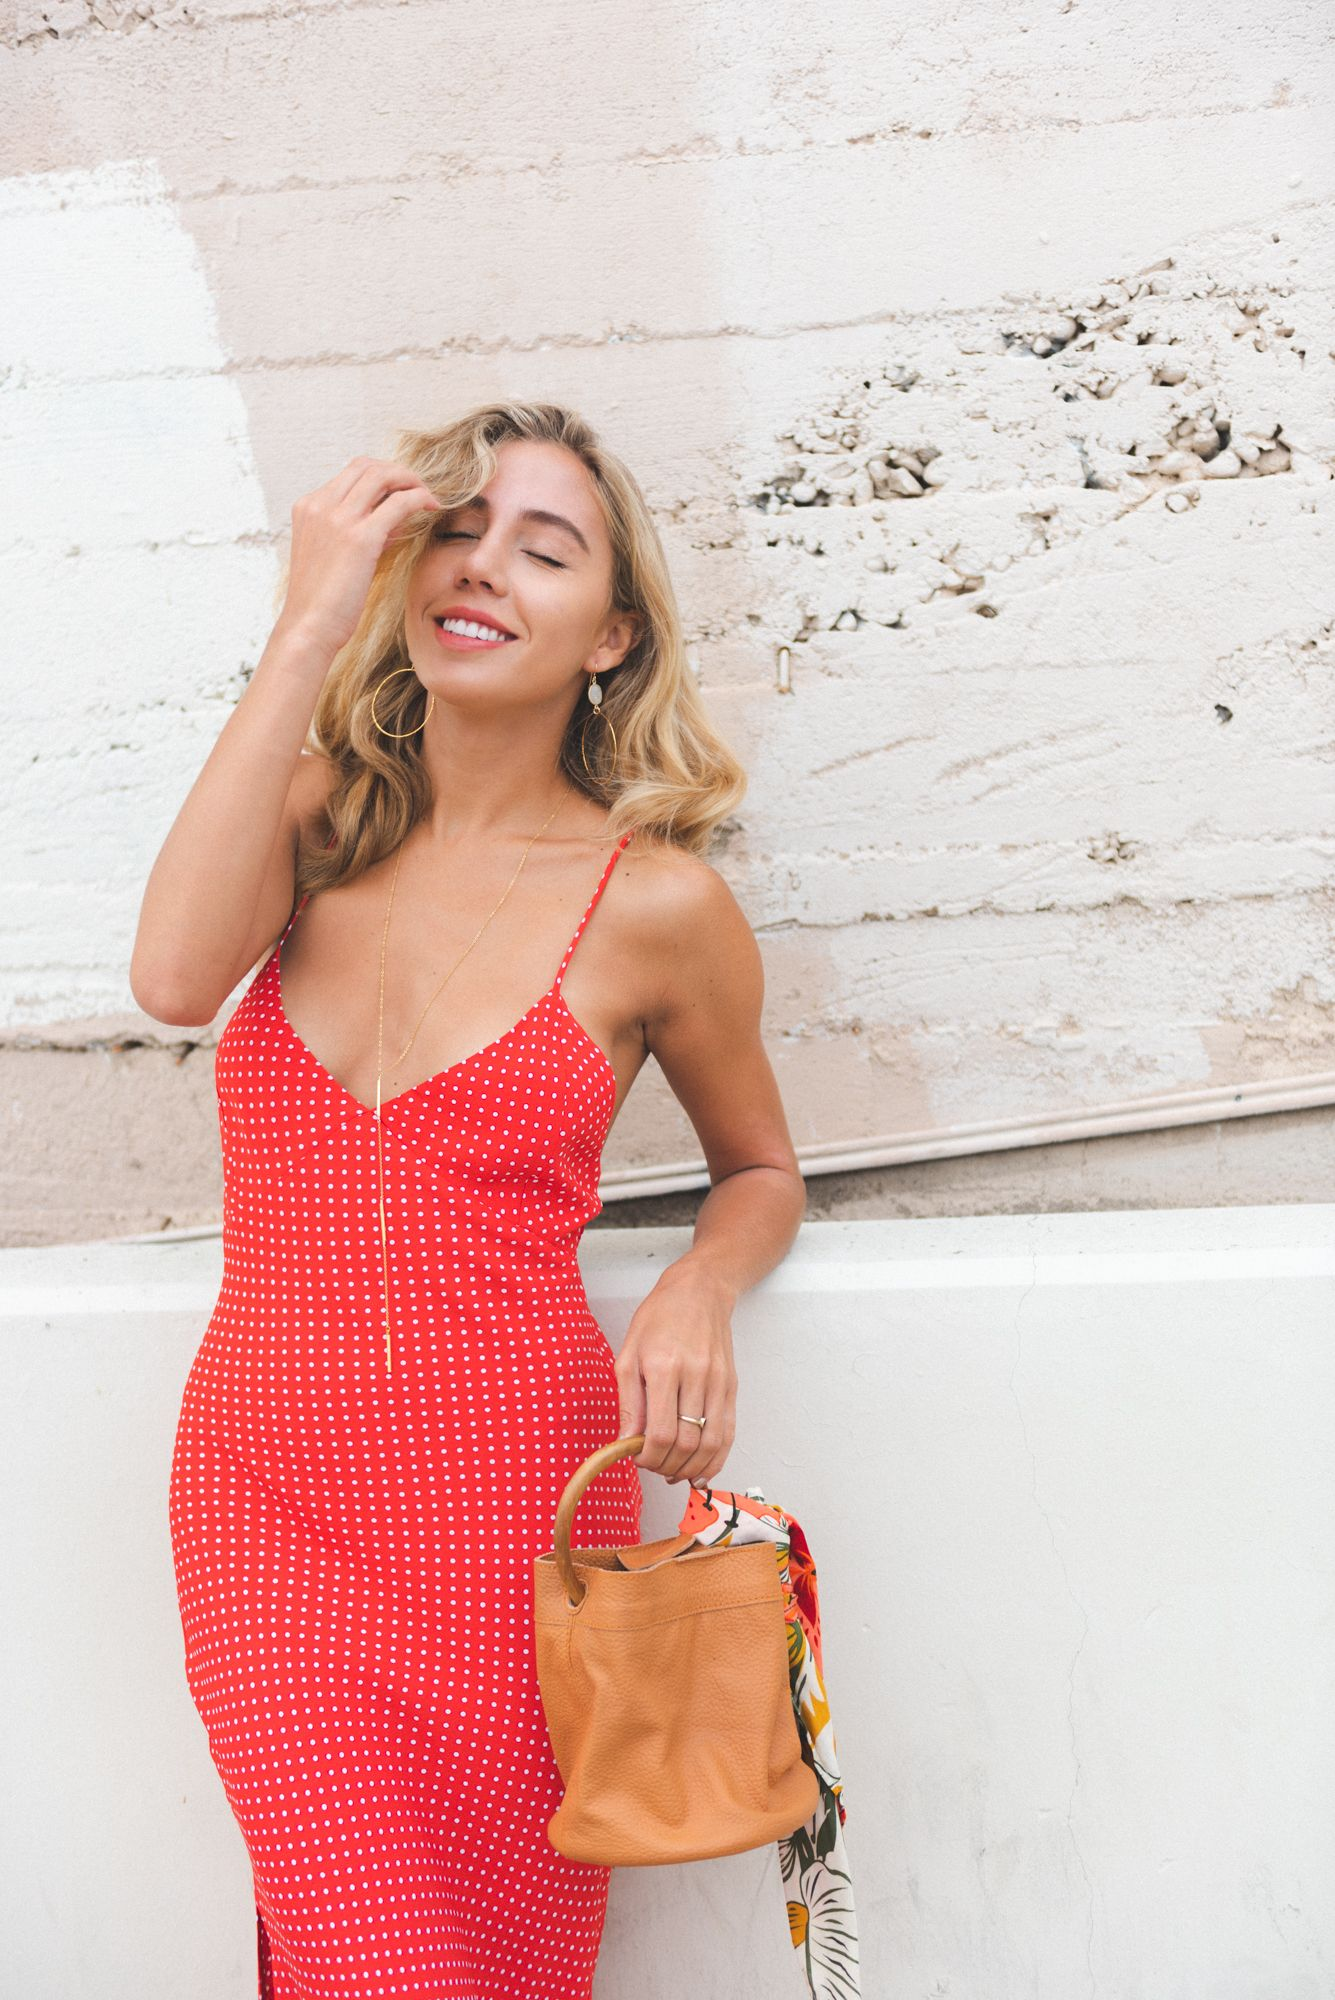 bbb34205619e9 Summer Wardrobe You Need include a slinky midi slip dress. Polka Dot slip  dress blue life slip dress midi dress layered jewelry top shop red slides  Red ...